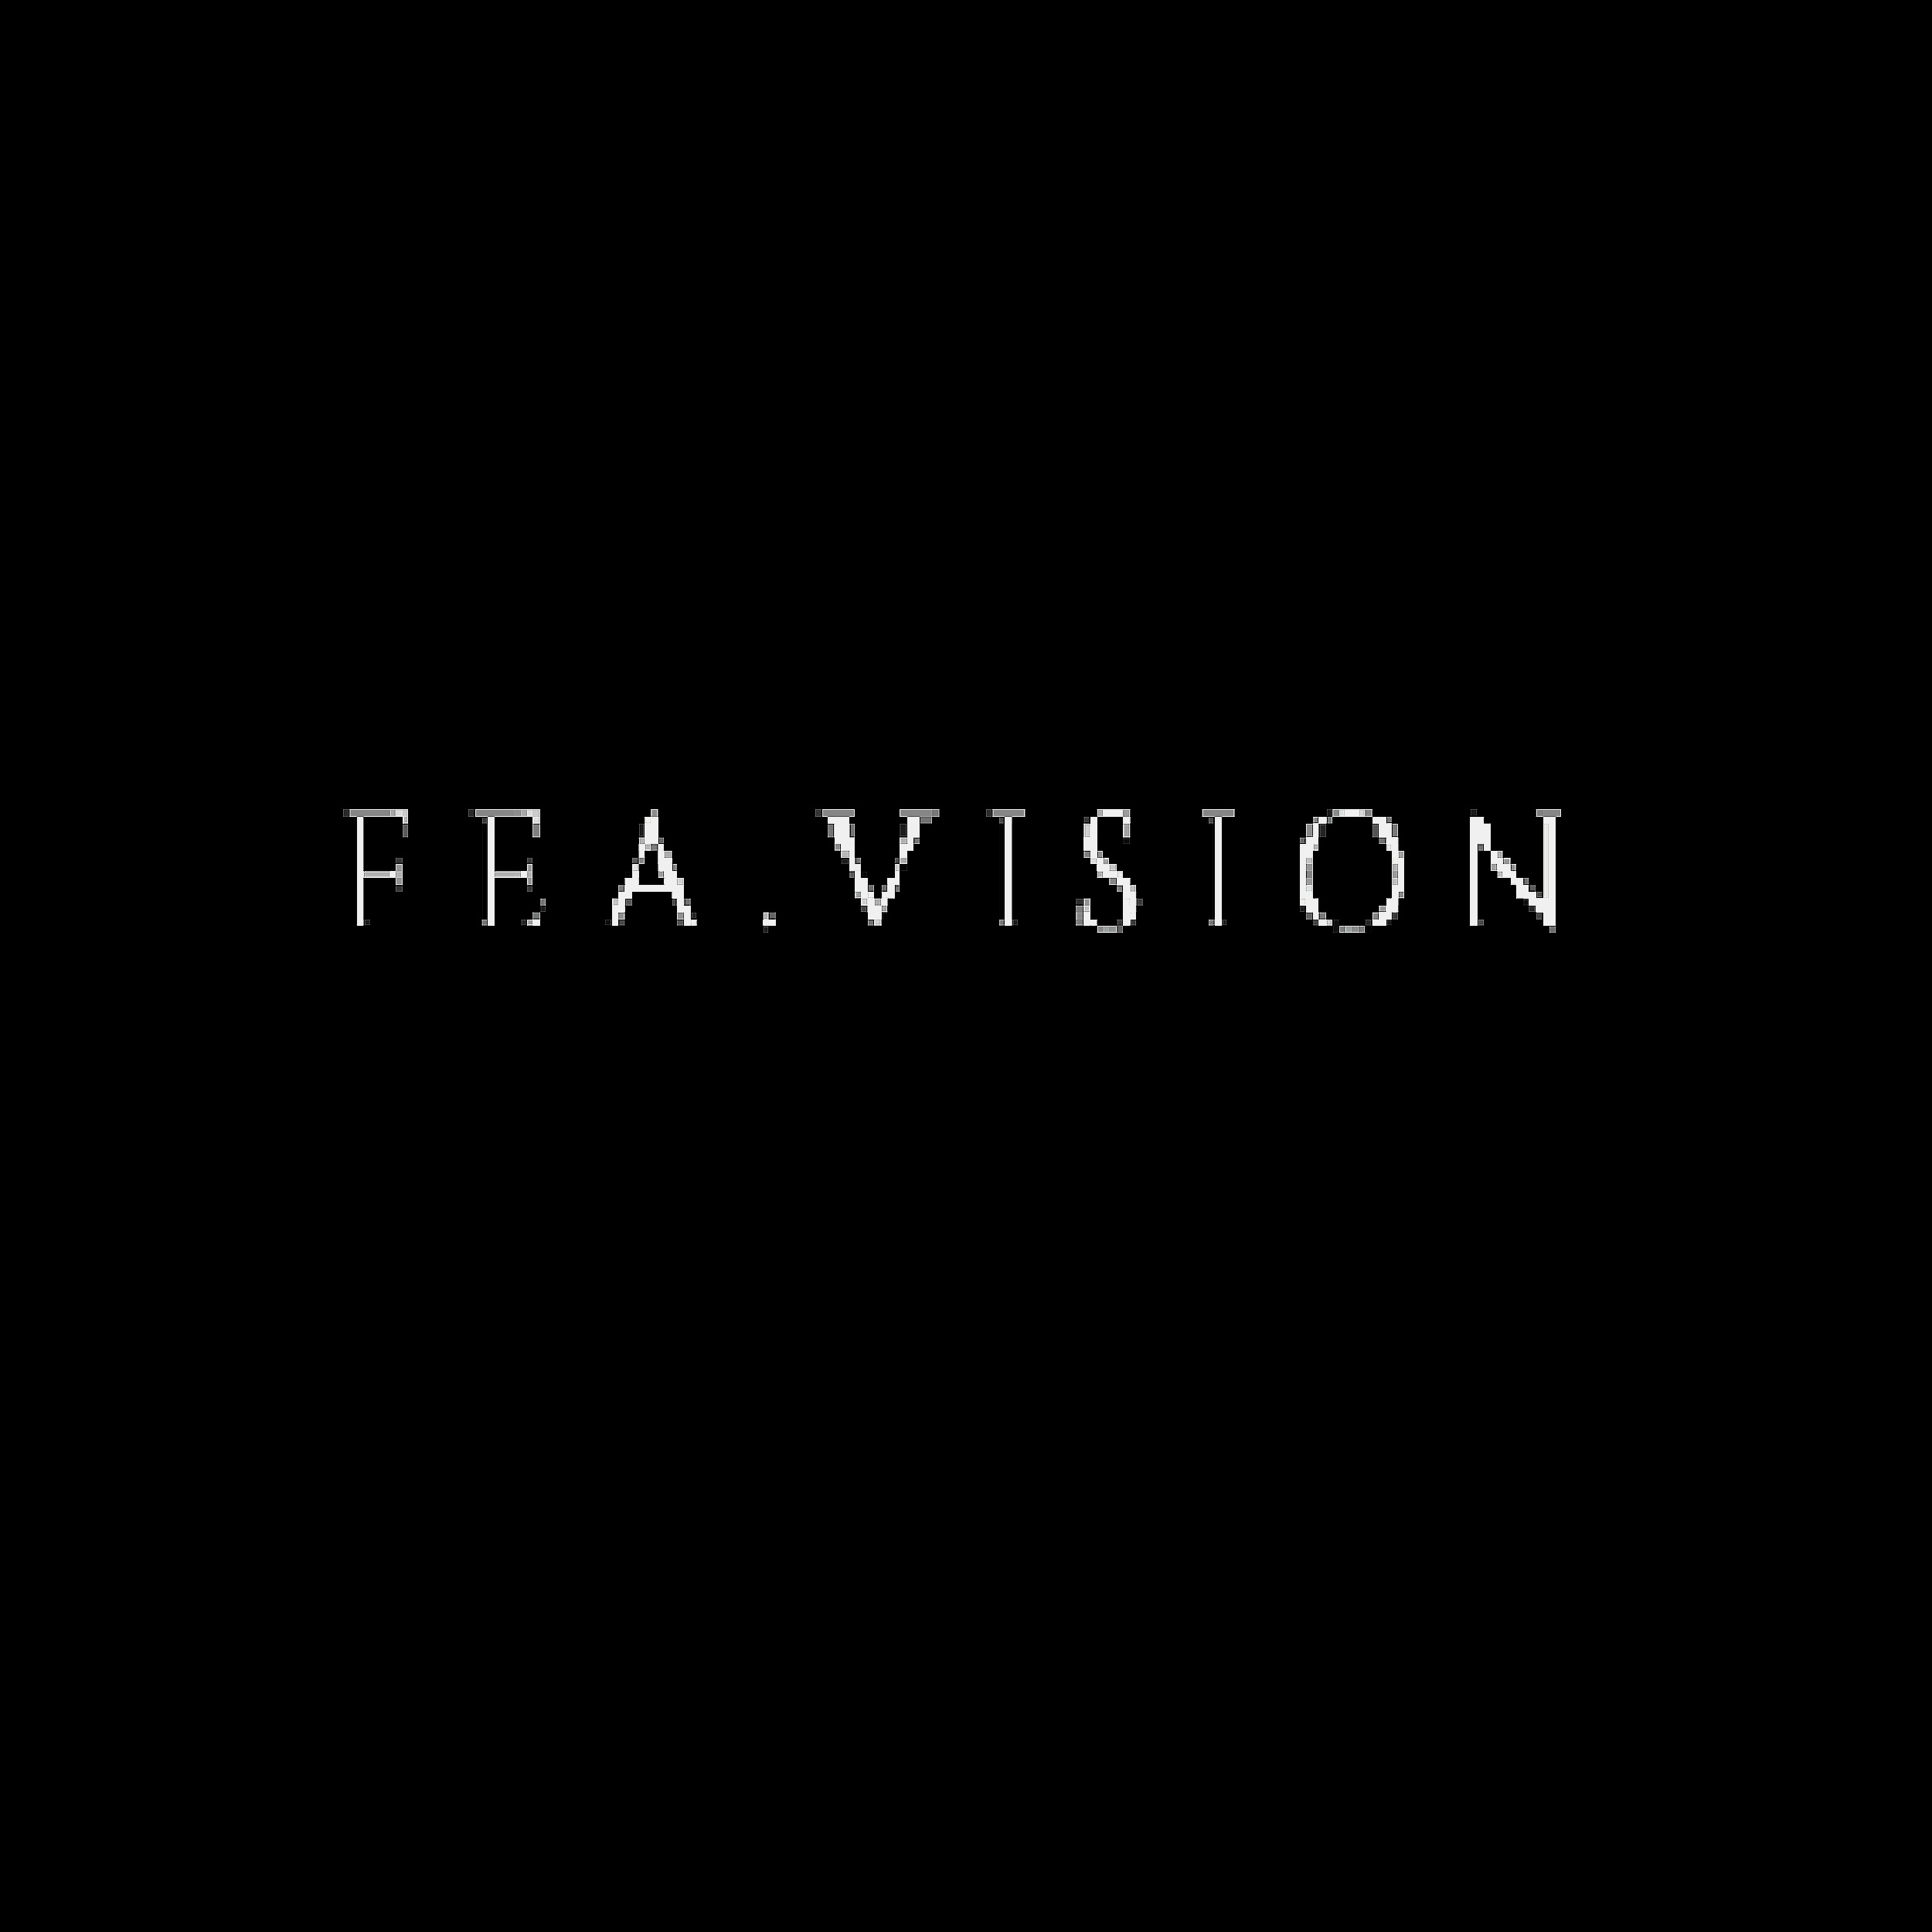 Copy of FEA.Vision